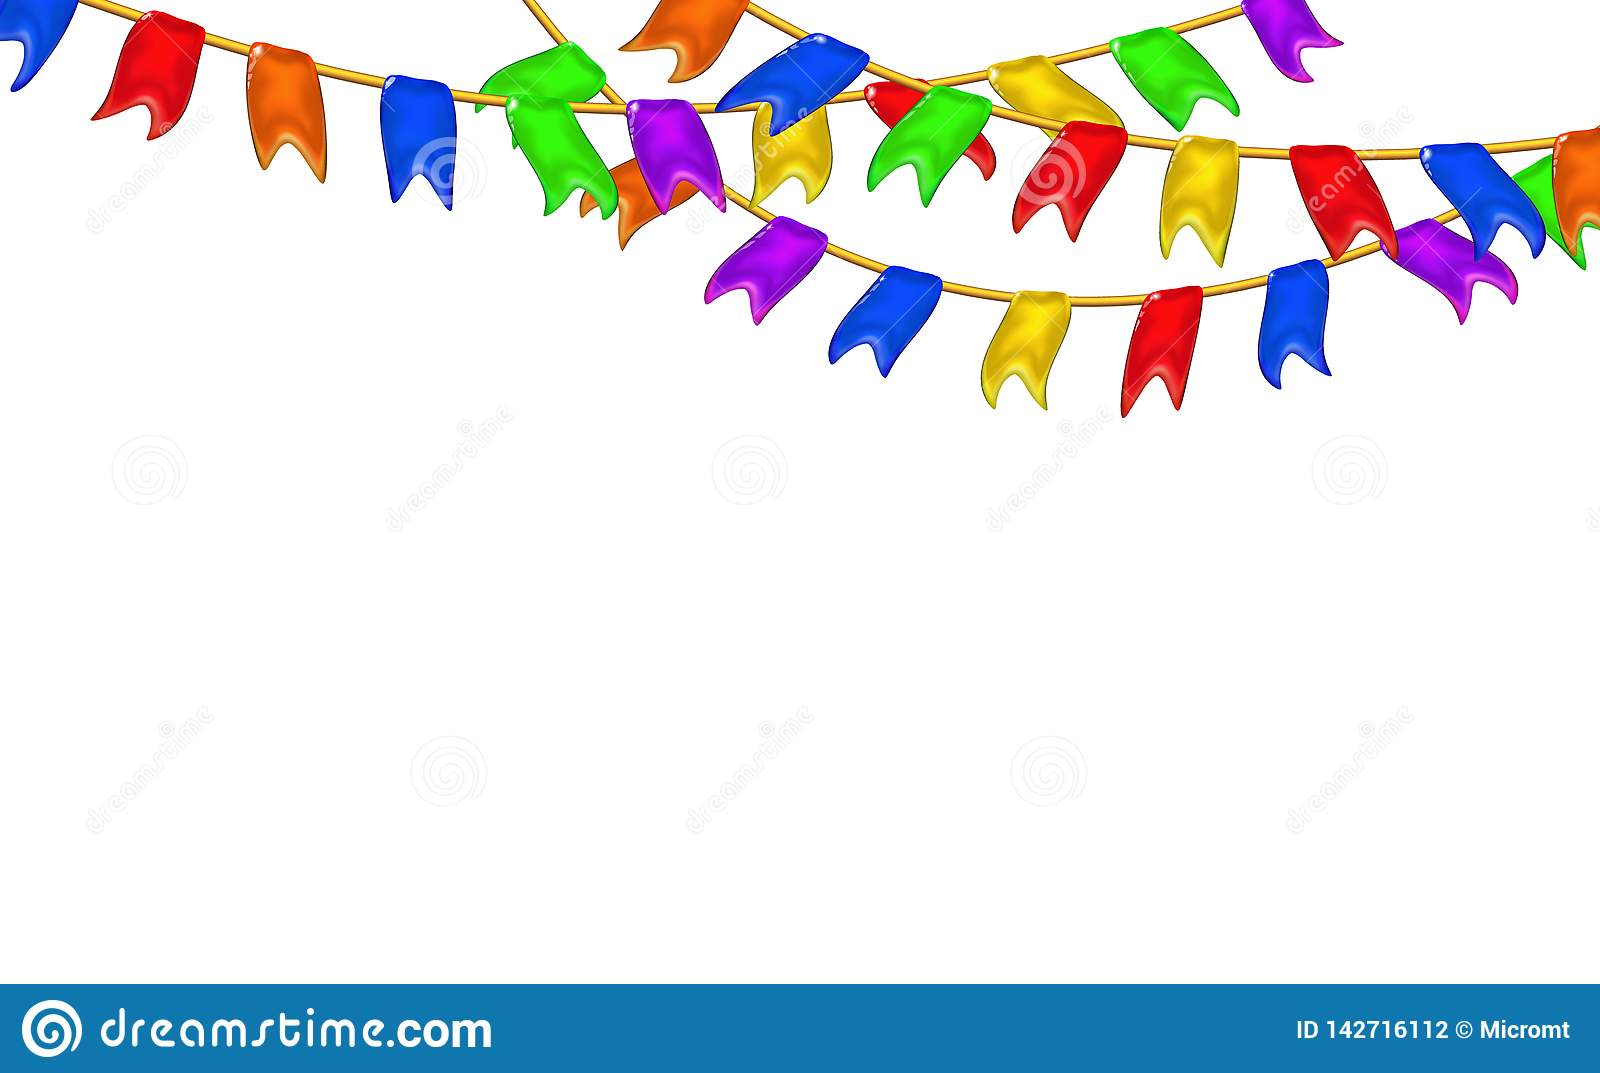 Carnival garlands flags decorative multicolor, 3d caramel glossy little pennants hanging by rope. Realistic plastic toy for